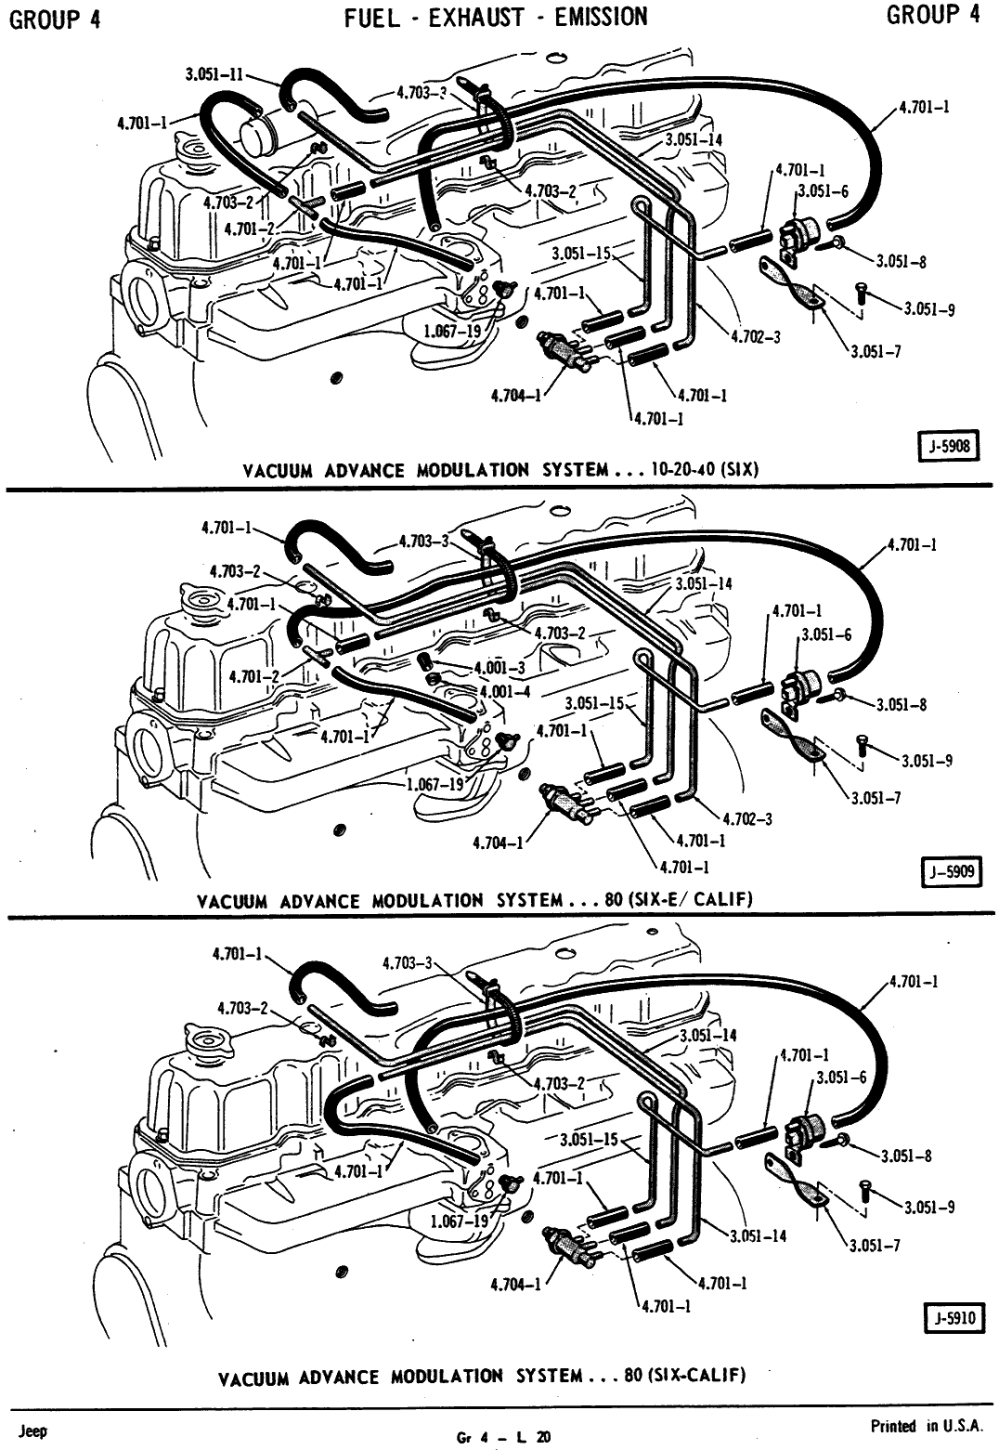 medium resolution of 1998 jeep cherokee vacuum hose diagram wiring diagram name vacuum line diagram for a 2000 jeep cherokee sport 4 0